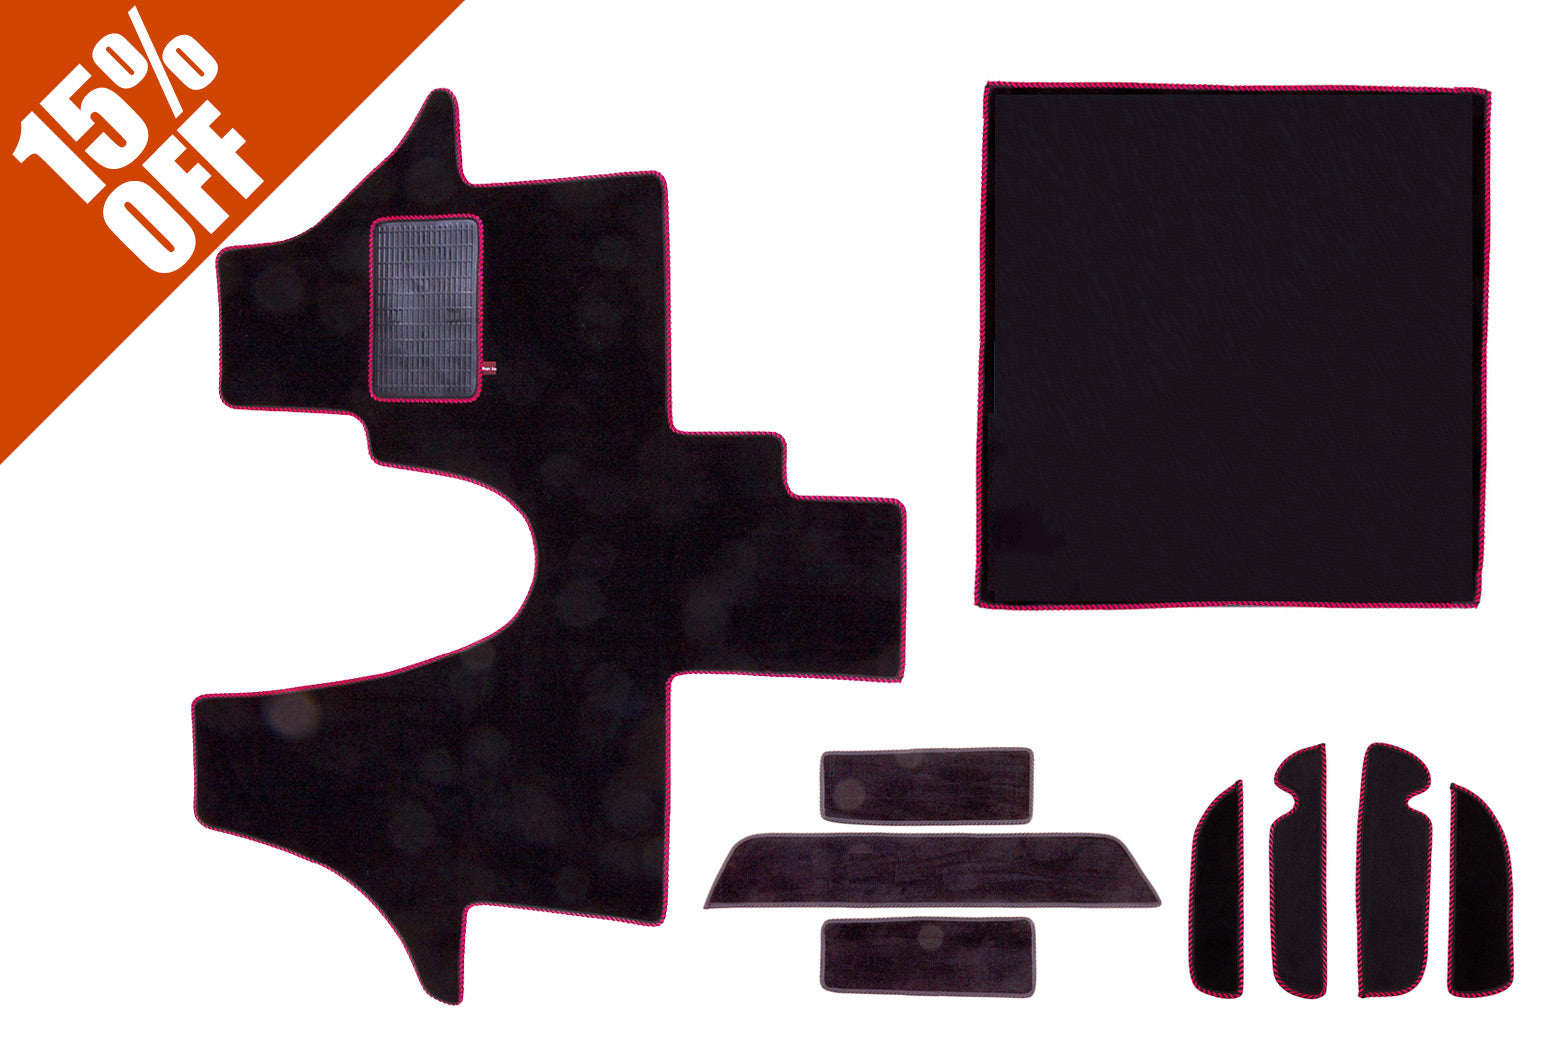 t6 cab mat set including cab mat, side steps, living area and door pocket liners in black carpet